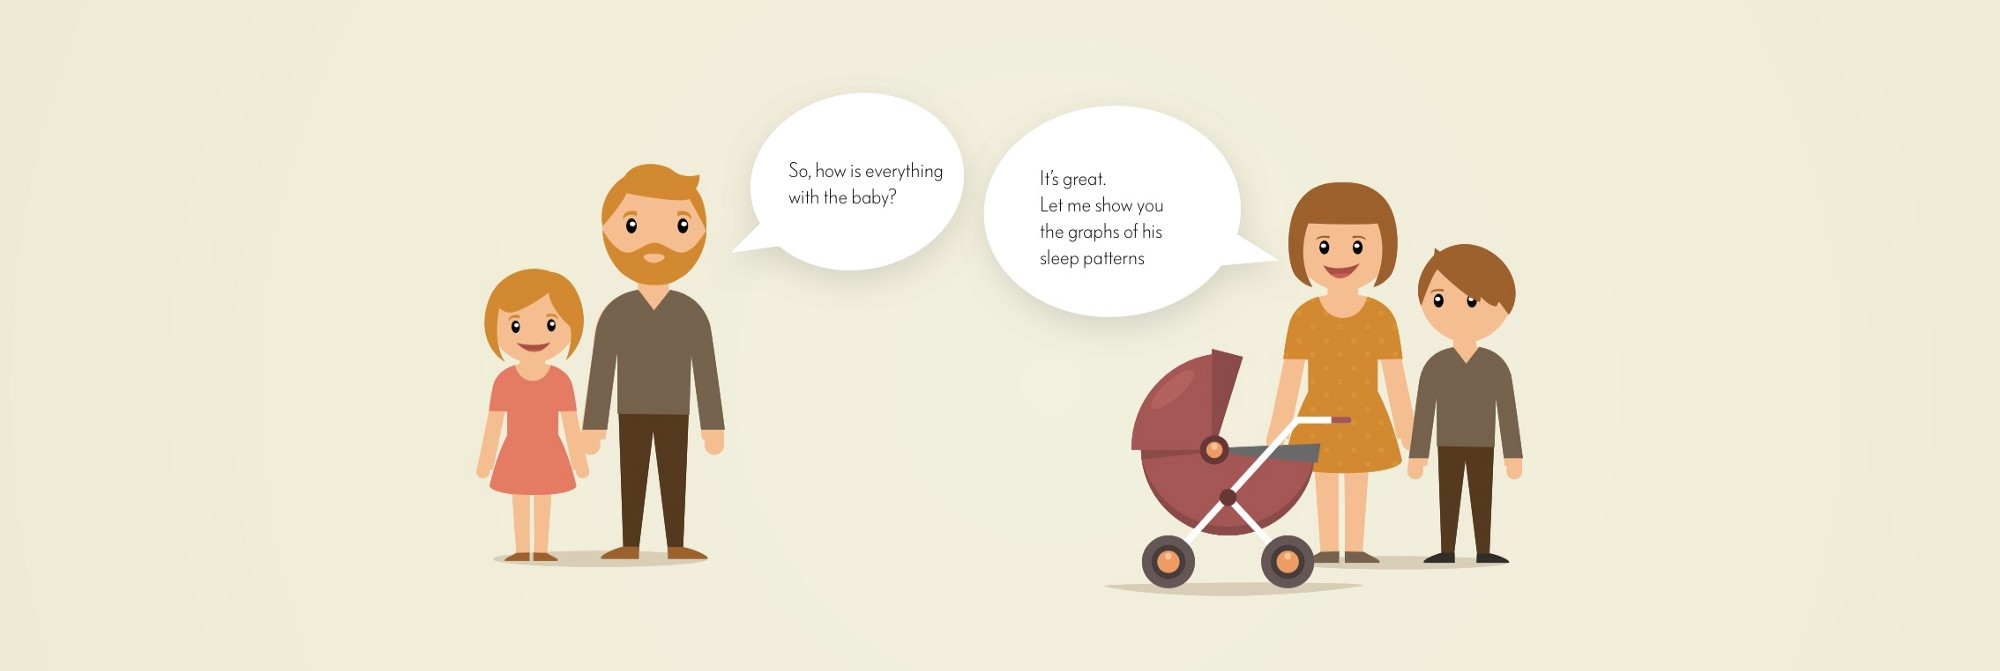 If we spoke about children in the same way smart products do, we would have some pretty awkward conversations.